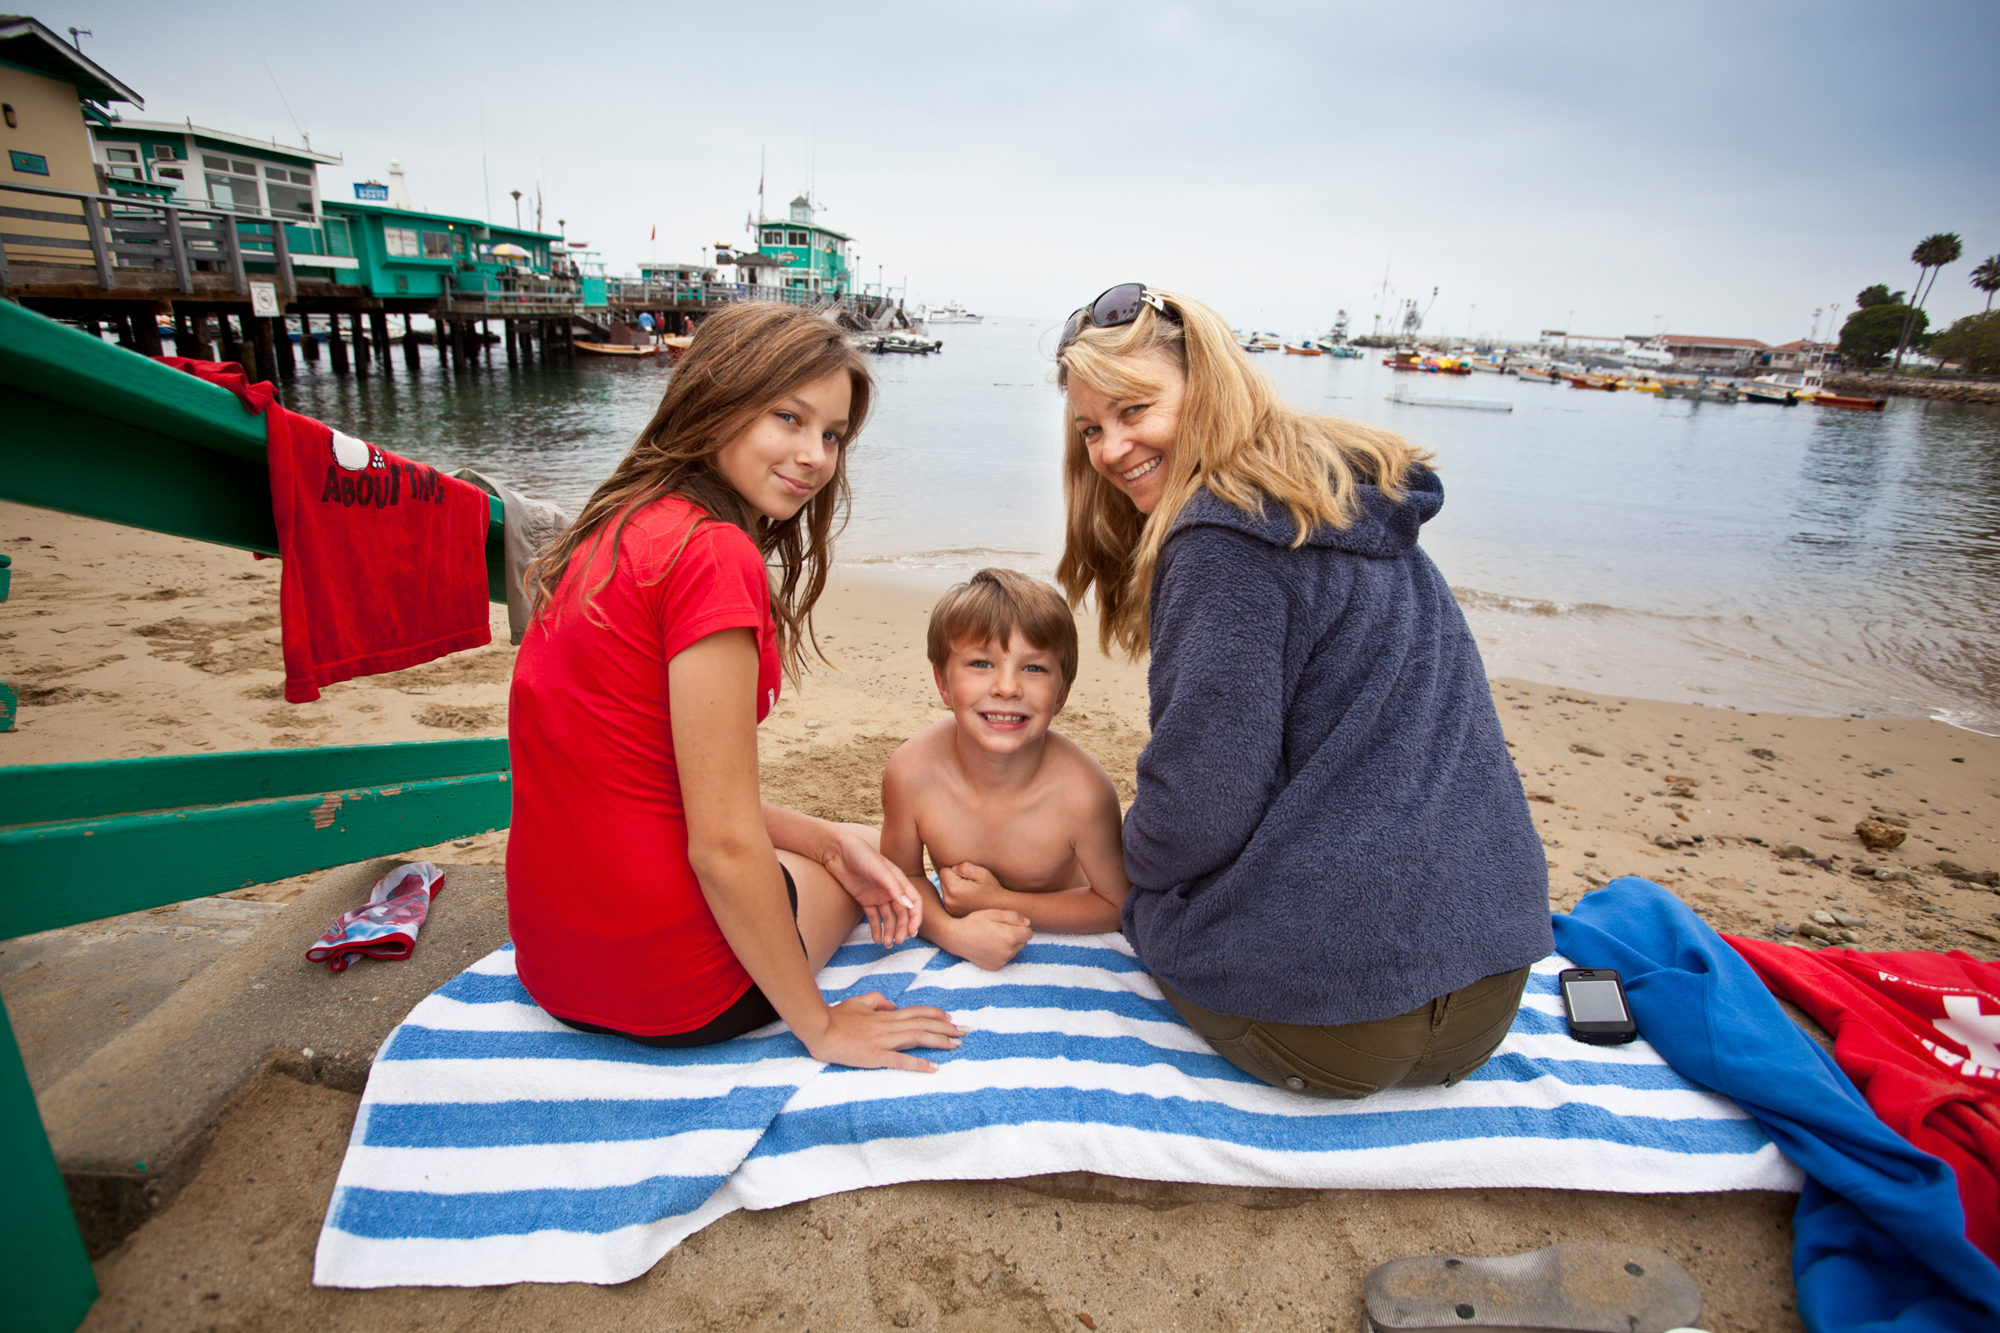 Two women and a young boy enjoying time at Avalon's beach